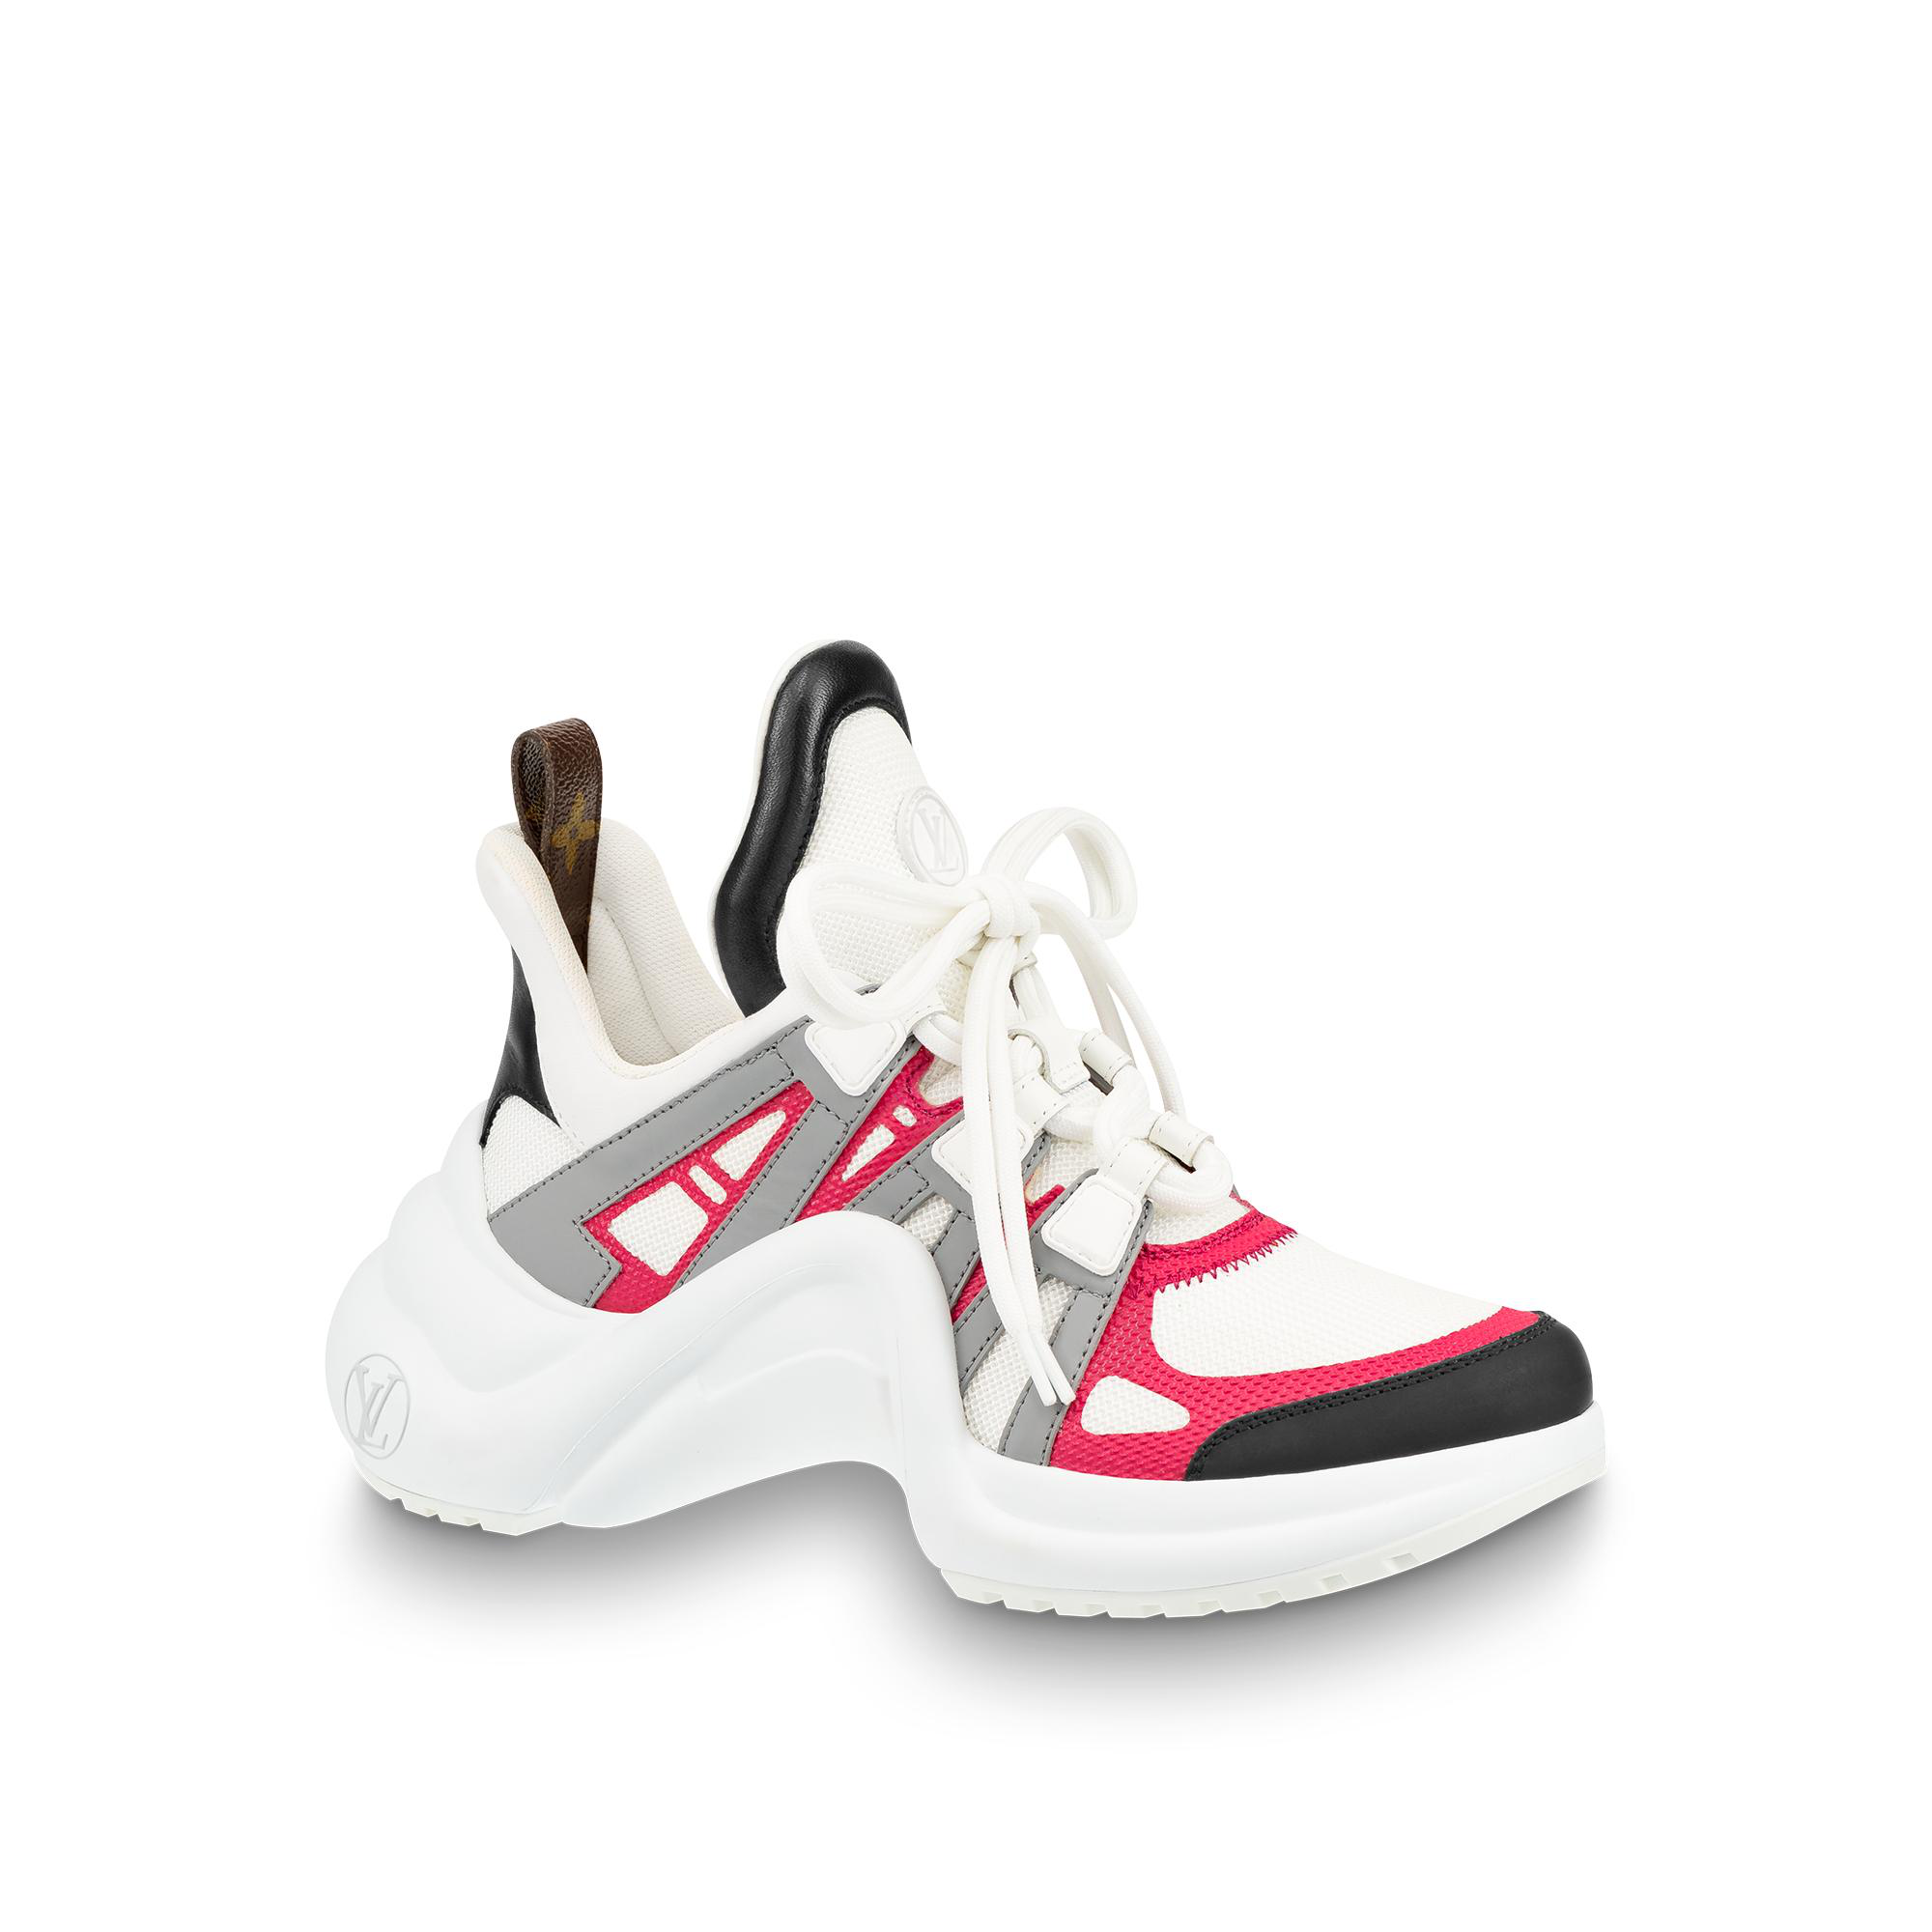 7108b57db203 Louis Vuitton Lv Archlight Sneaker In Rose Clair